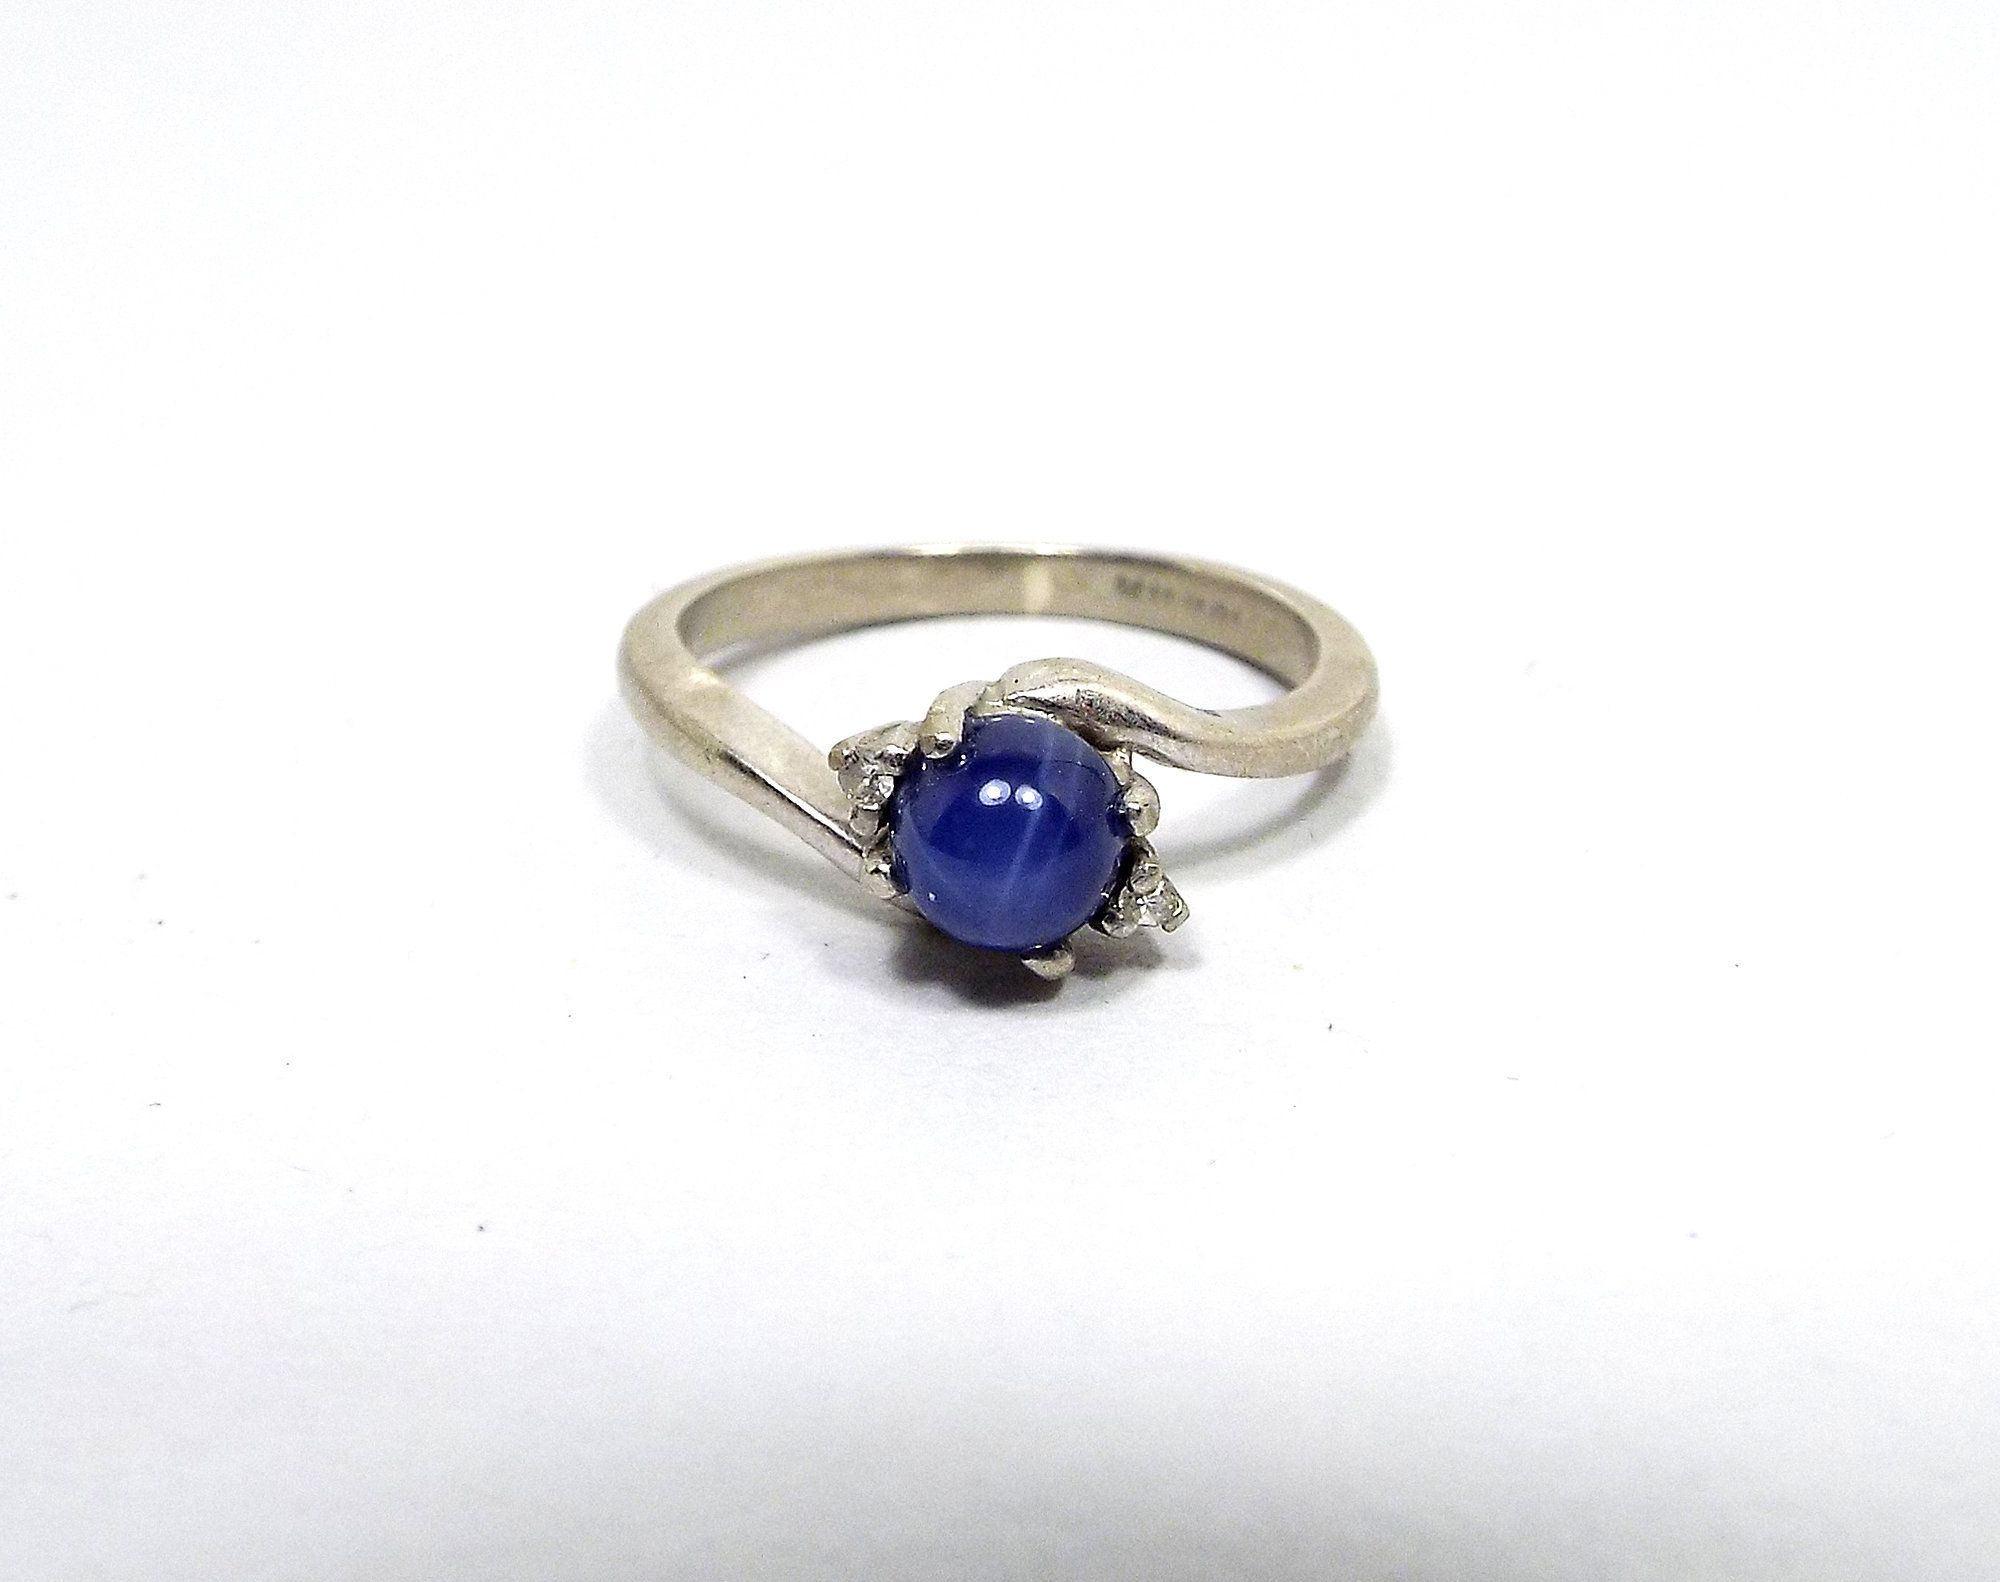 Small Vintage 10k White Gold Blue Star Sapphire Gemstone And Diamond Ring Mid Century 1960s 60s By S Star Sapphire Gemstone Blue Star Sapphire Vintage Jewelry